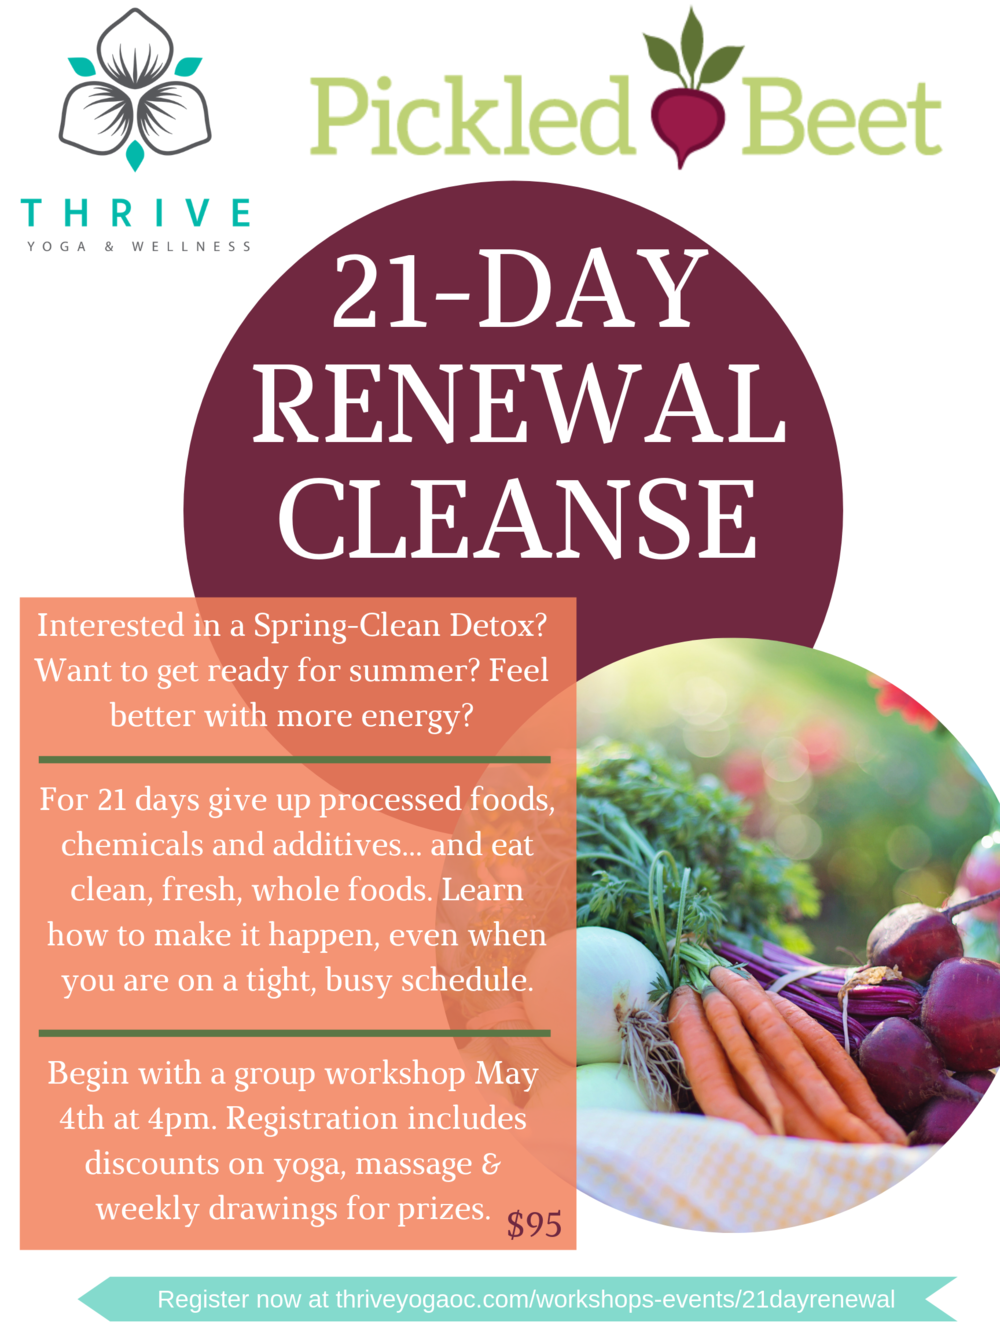 """Join Pickled Beet's 21 Day Renewal Cleanse to get ready for summer! We will meet Saturday, May 4, at 4pm where you will receive informational materials to aid in your success. The rest of your journey will continue in """"The Pickled Beet 21-Day Renewal Cleanse"""" Facebook Group, a special group created just for this event! We will discuss meal planning, meal prepping, share recipes, shopping tips, and keep each other accountable, all in the privacy of a closed Facebook group led by a certified nutritionist. You'll be amazed at what 21 days can do for you: Eliminate sugar cravings Balance blood sugar levels Boost metabolism Improve sleep Reduce inflammation Improve digestion Jump start weight loss The challenge is only 21 days - three weeks - give it a try! Registration includes 20% off a one-month yoga membership or multi-class pass. Weekly drawings for prizes. Additional wellness discounts from our community."""